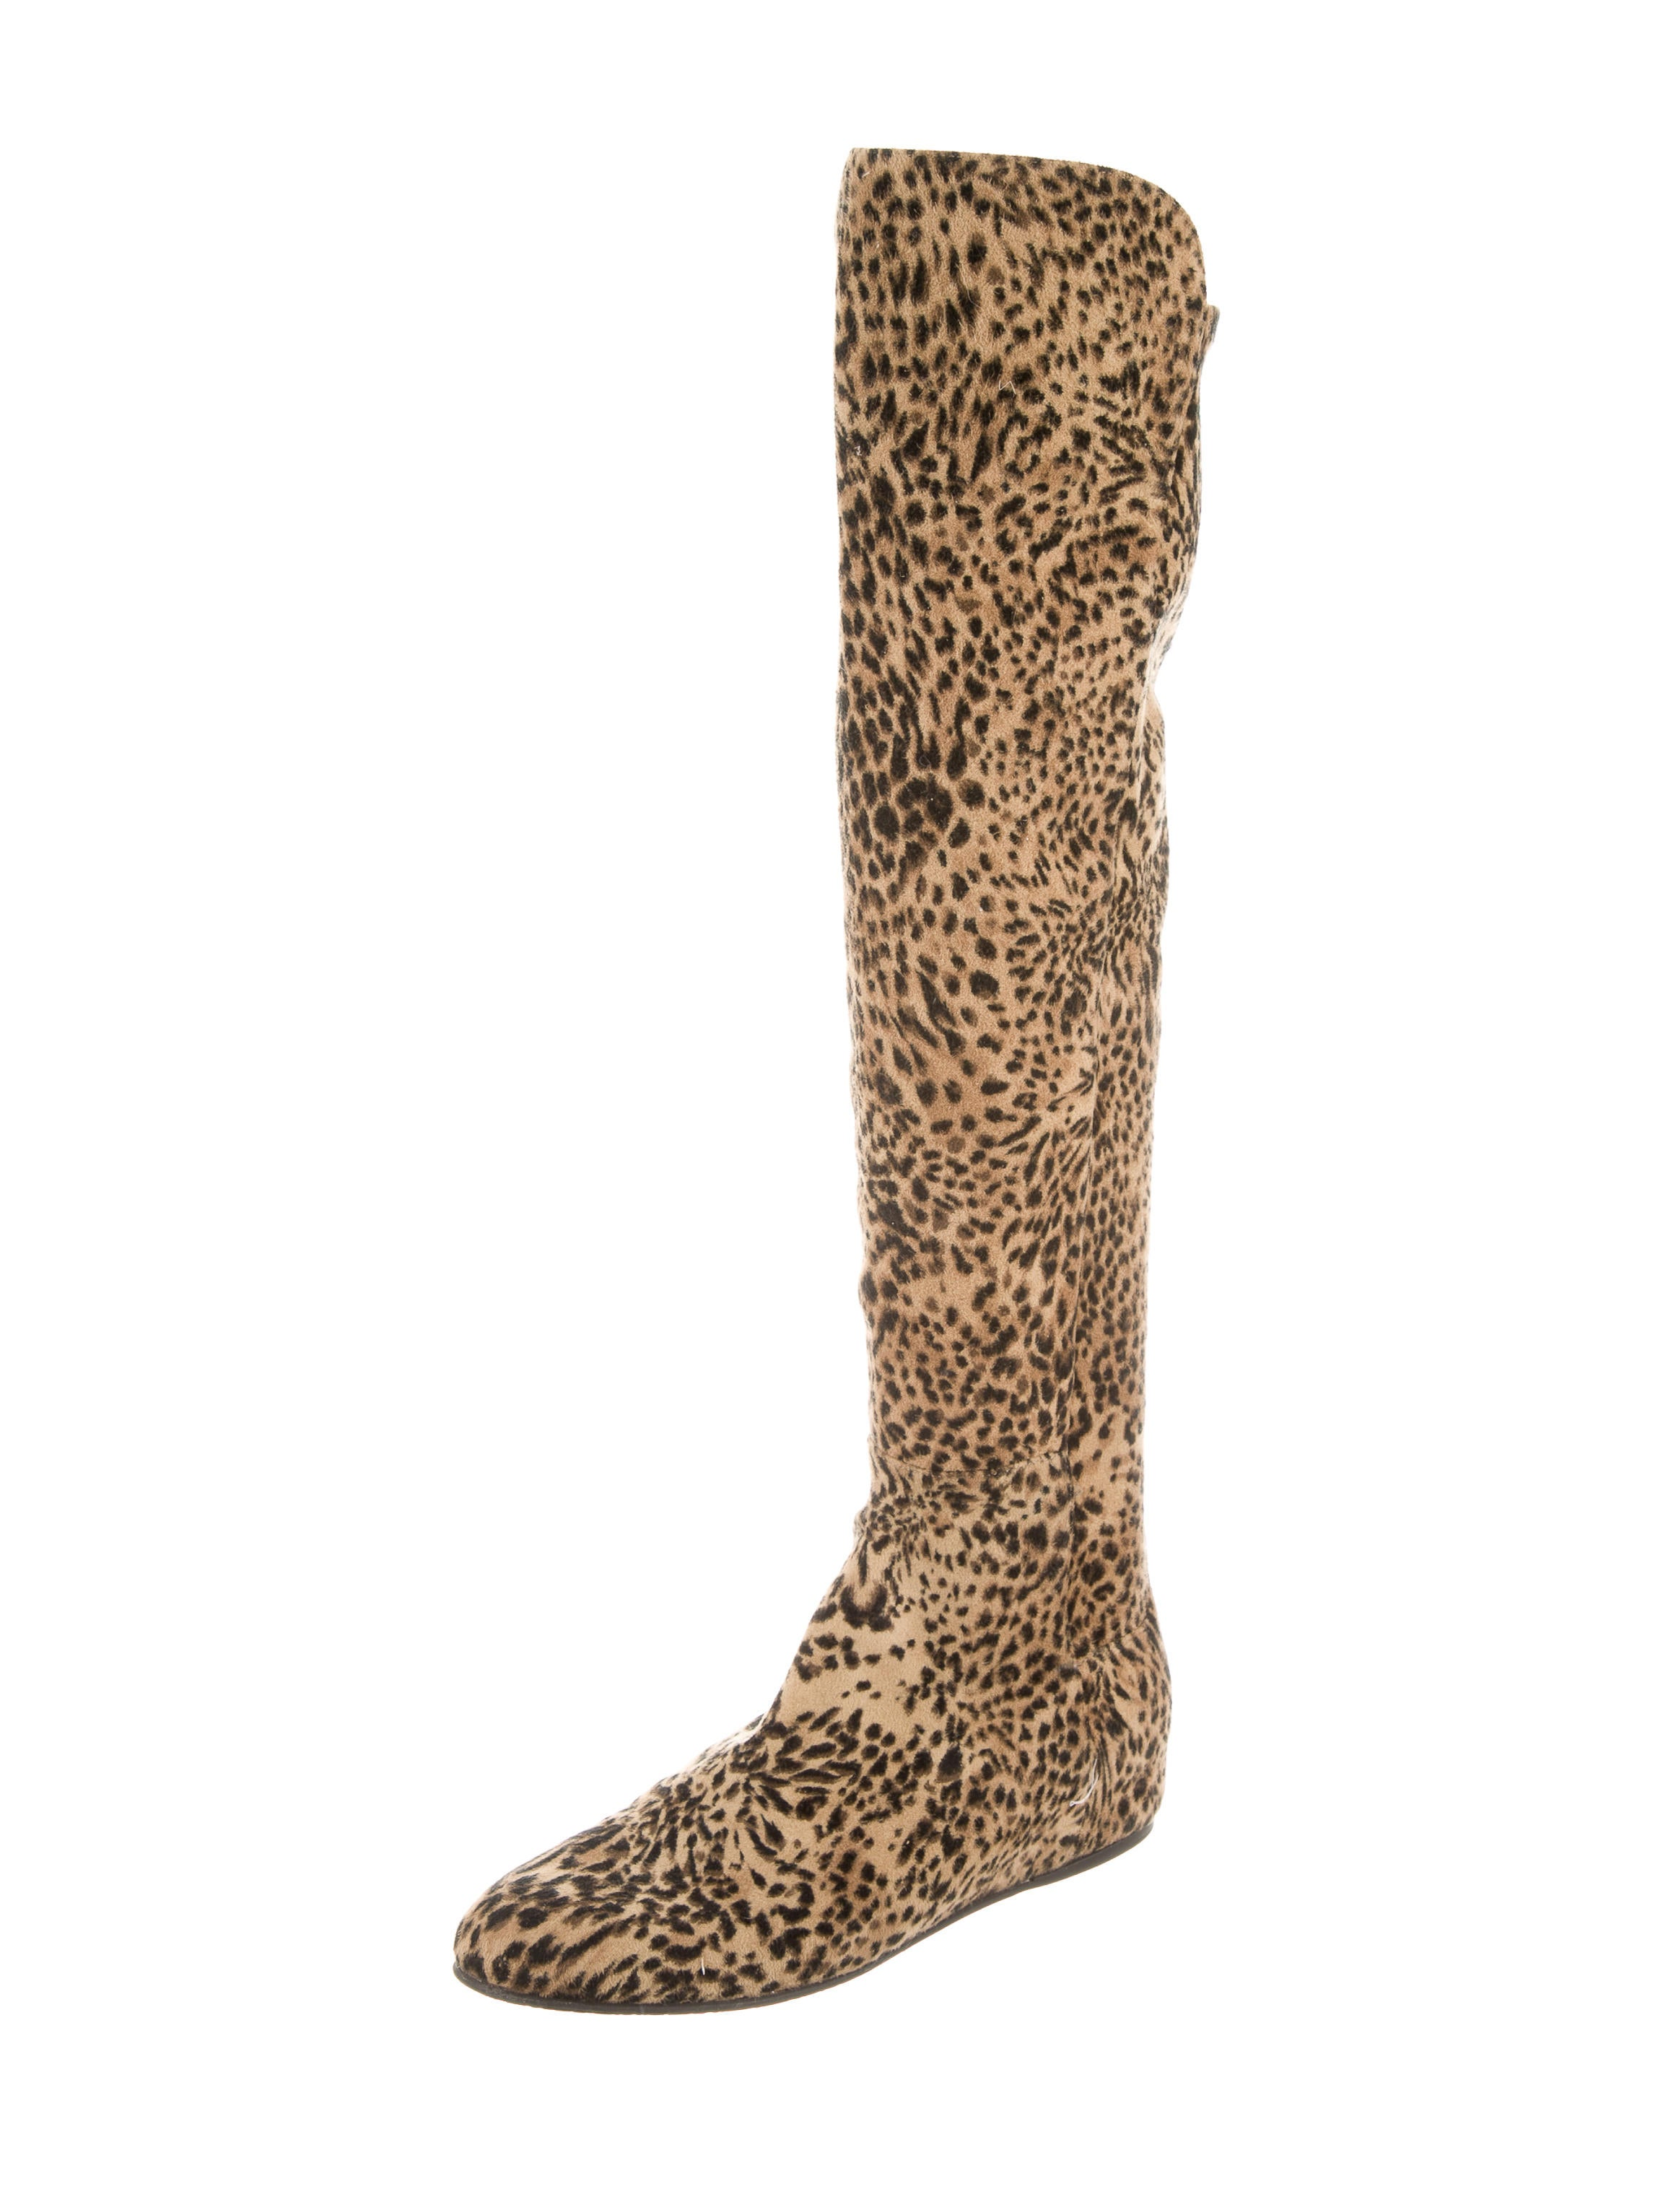 Suede fabric upper Leopard print Block heel Gold tone trim Gold buckle fastening Heel pull tab RI brand side zip fastening Heel height: 6cm. Beige faux suede lace-up boots. Quick view. Add to wishlist. £ Grey suede slouch block heel boots. Quick view. Add to wishlist. £ Black faux suede pointed cone heel boots.